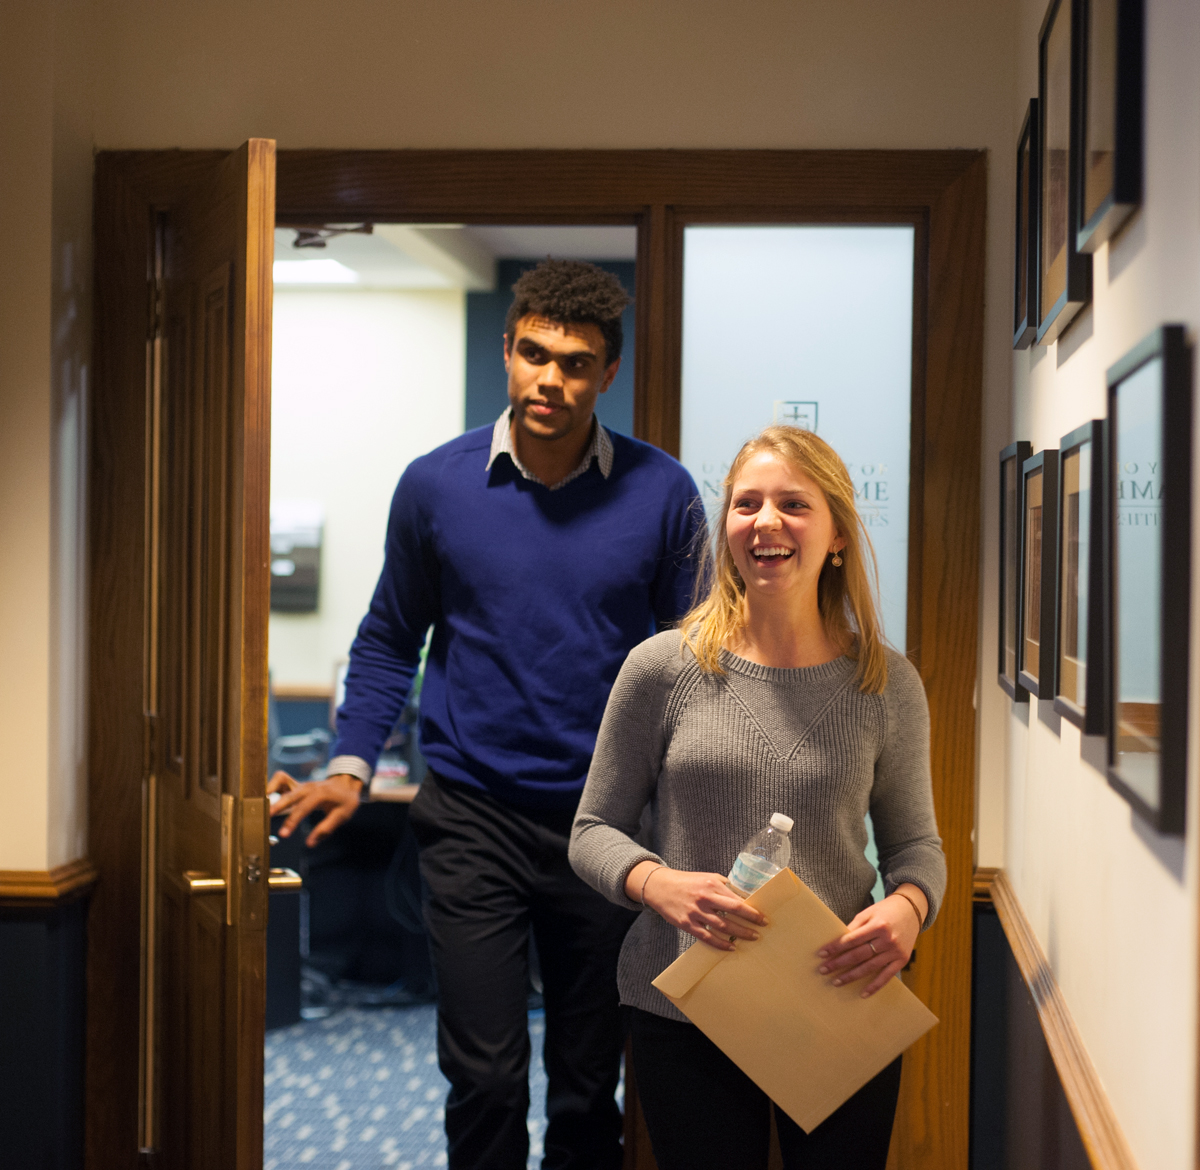 Corey Robinson and Becca Blais emerge from the Judicial Council office after receiving news they had won the student body election for president and vice president.